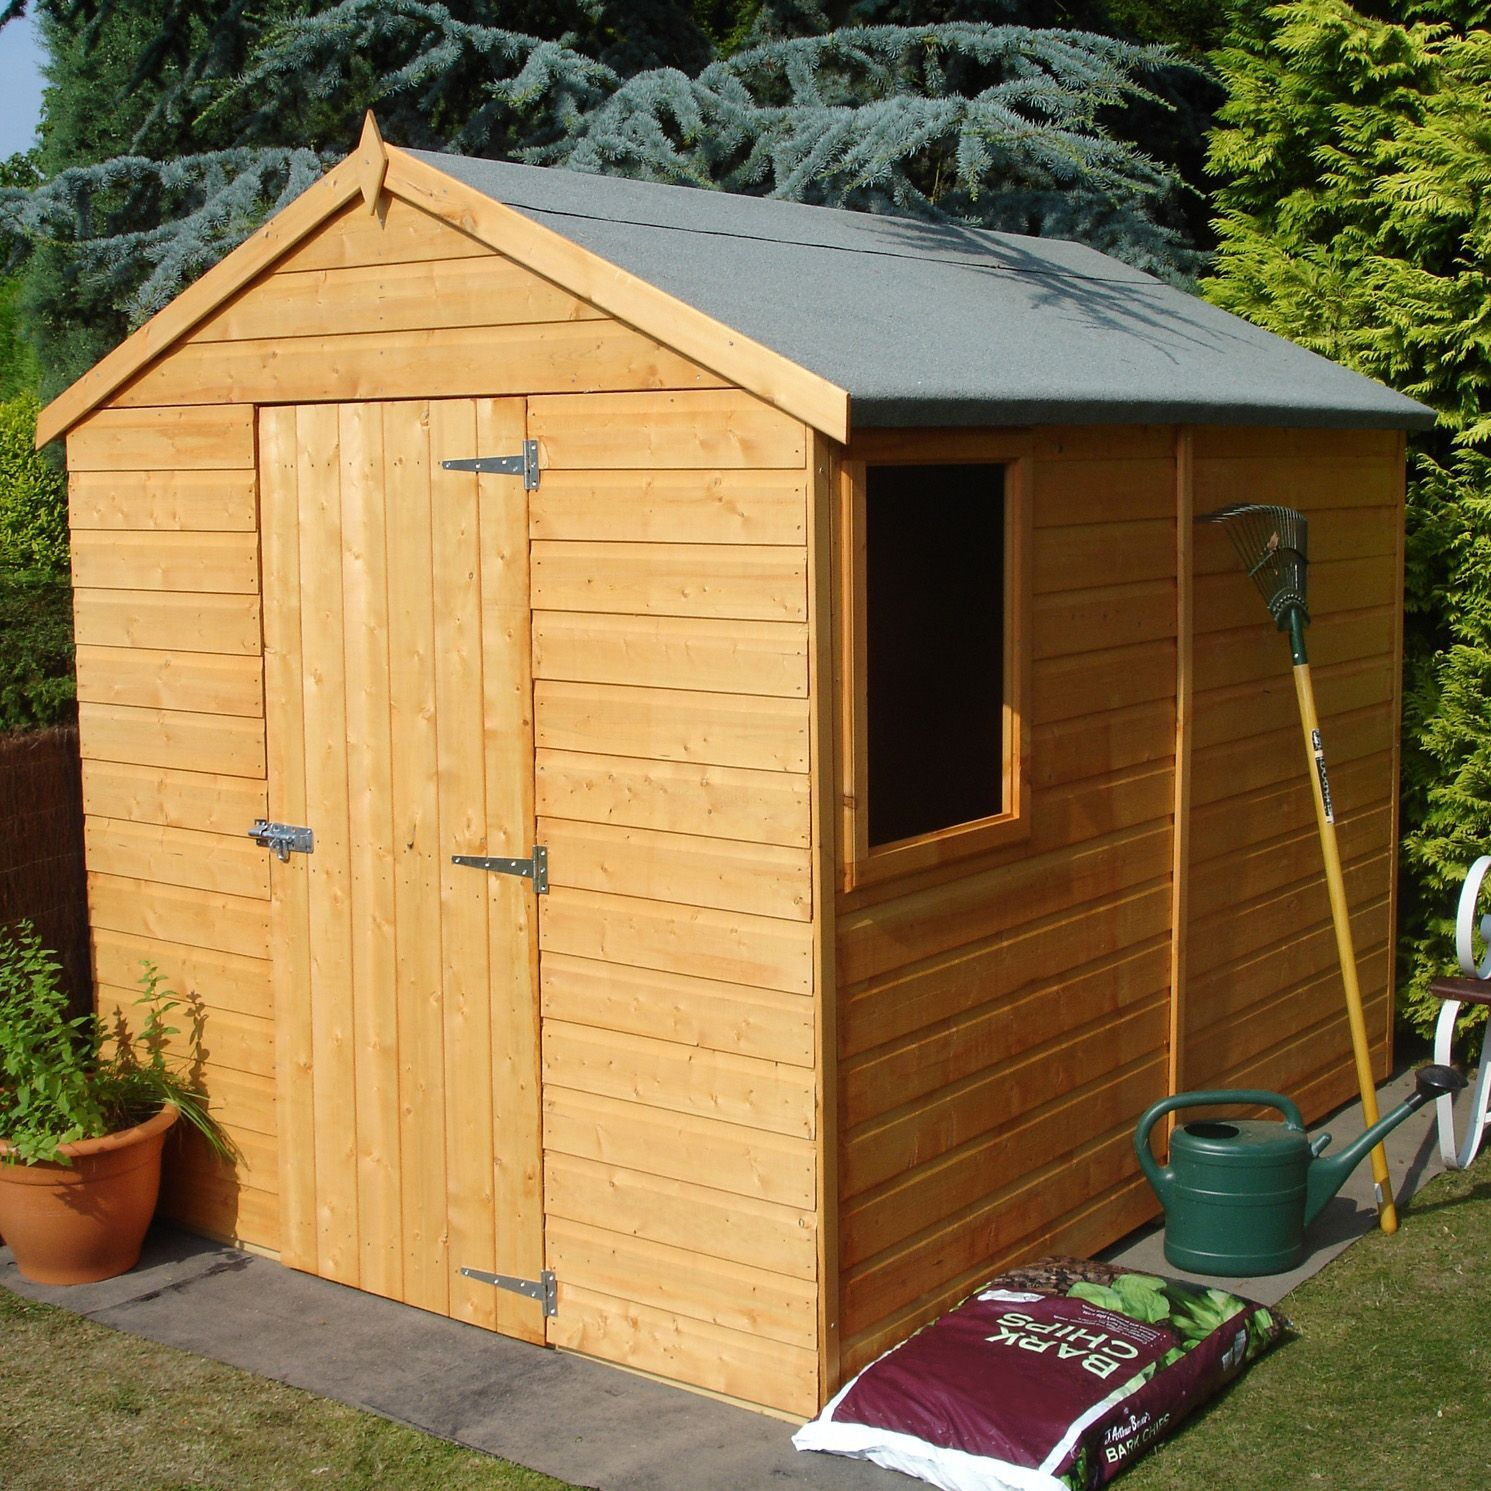 Shire Durham 8x6 Apex Shiplap Wooden Shed Base Included Honey Brown In 2020 Wooden Sheds Building A Shed Shed